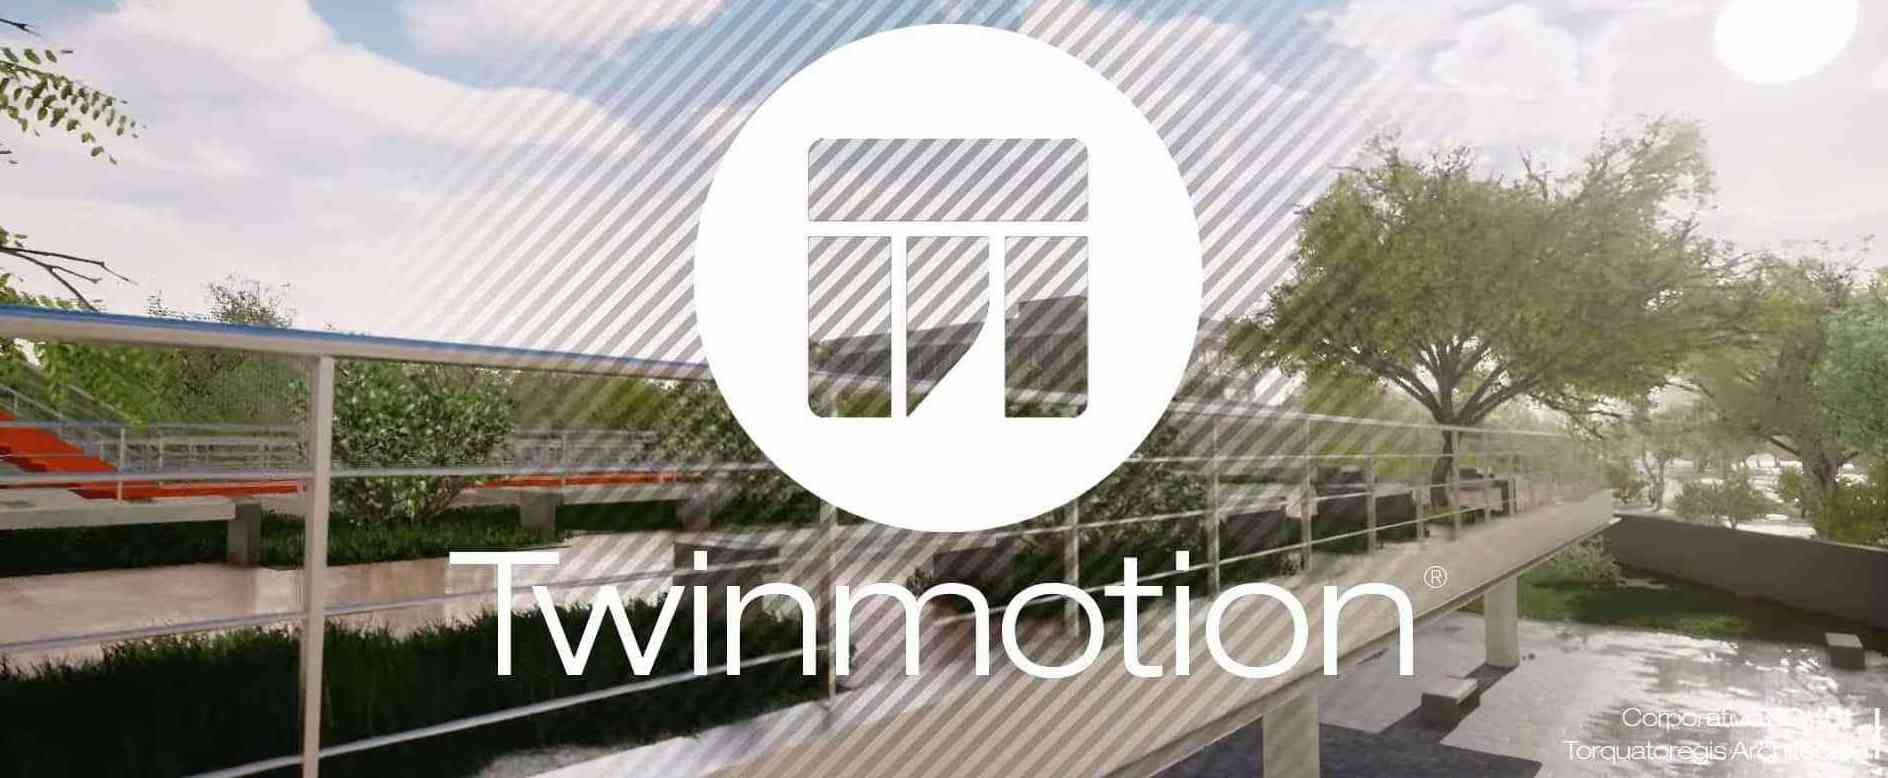 Abvent unveils Twinmotion 2018 powered by Unreal Engine +